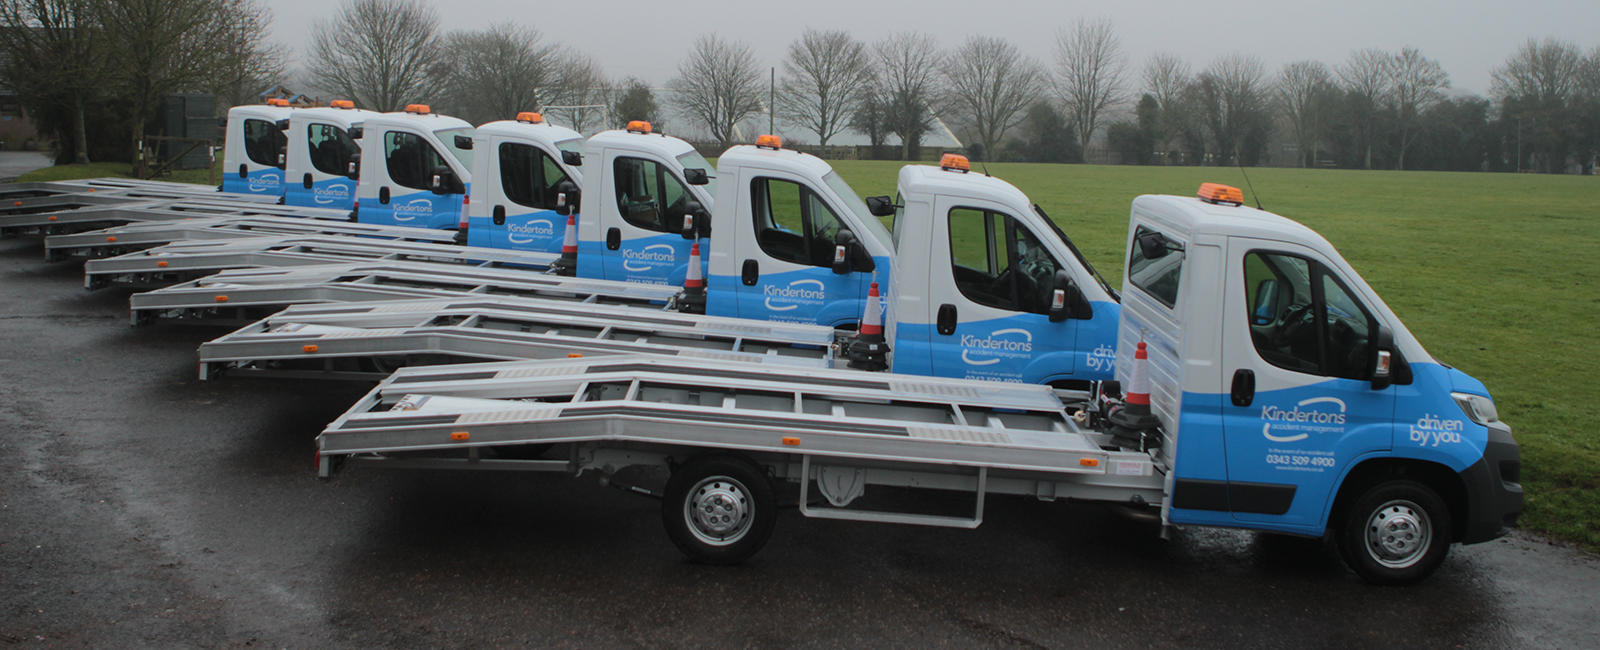 Kinderton Branded Car Transporters - Different View